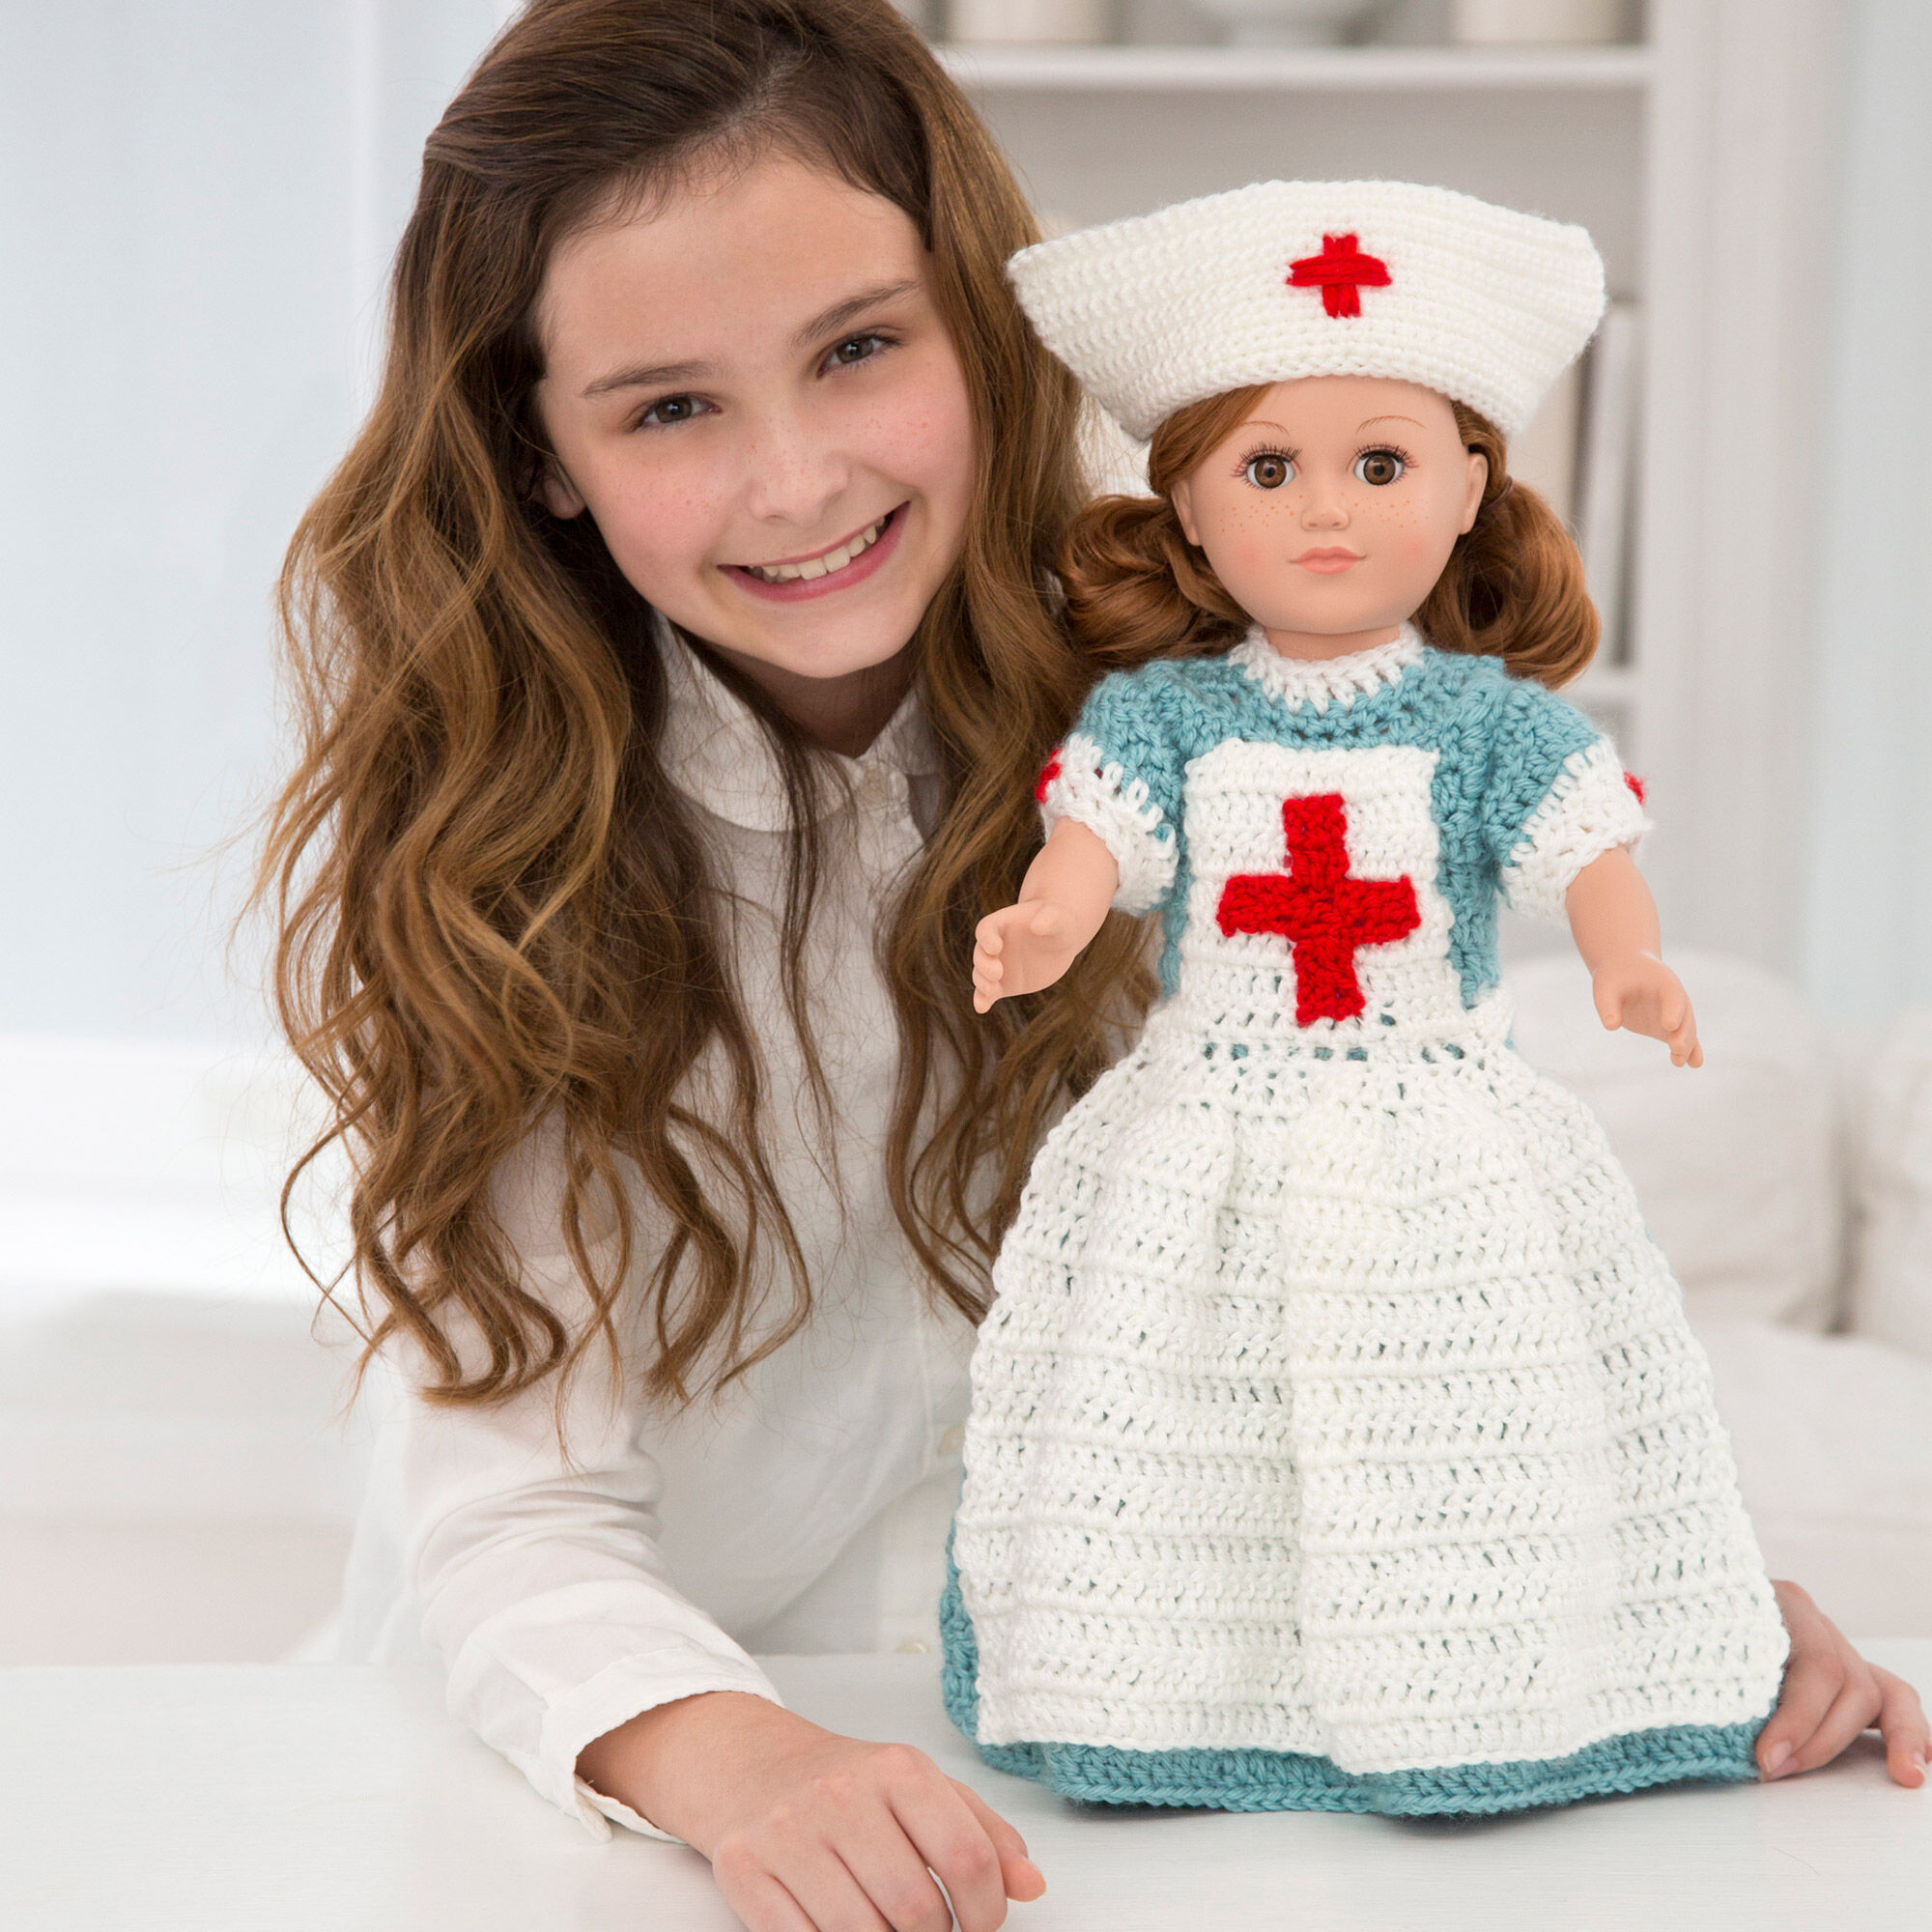 Judith the nurse amigurumi pattern by Sahrit (With images ... | 2000x2000